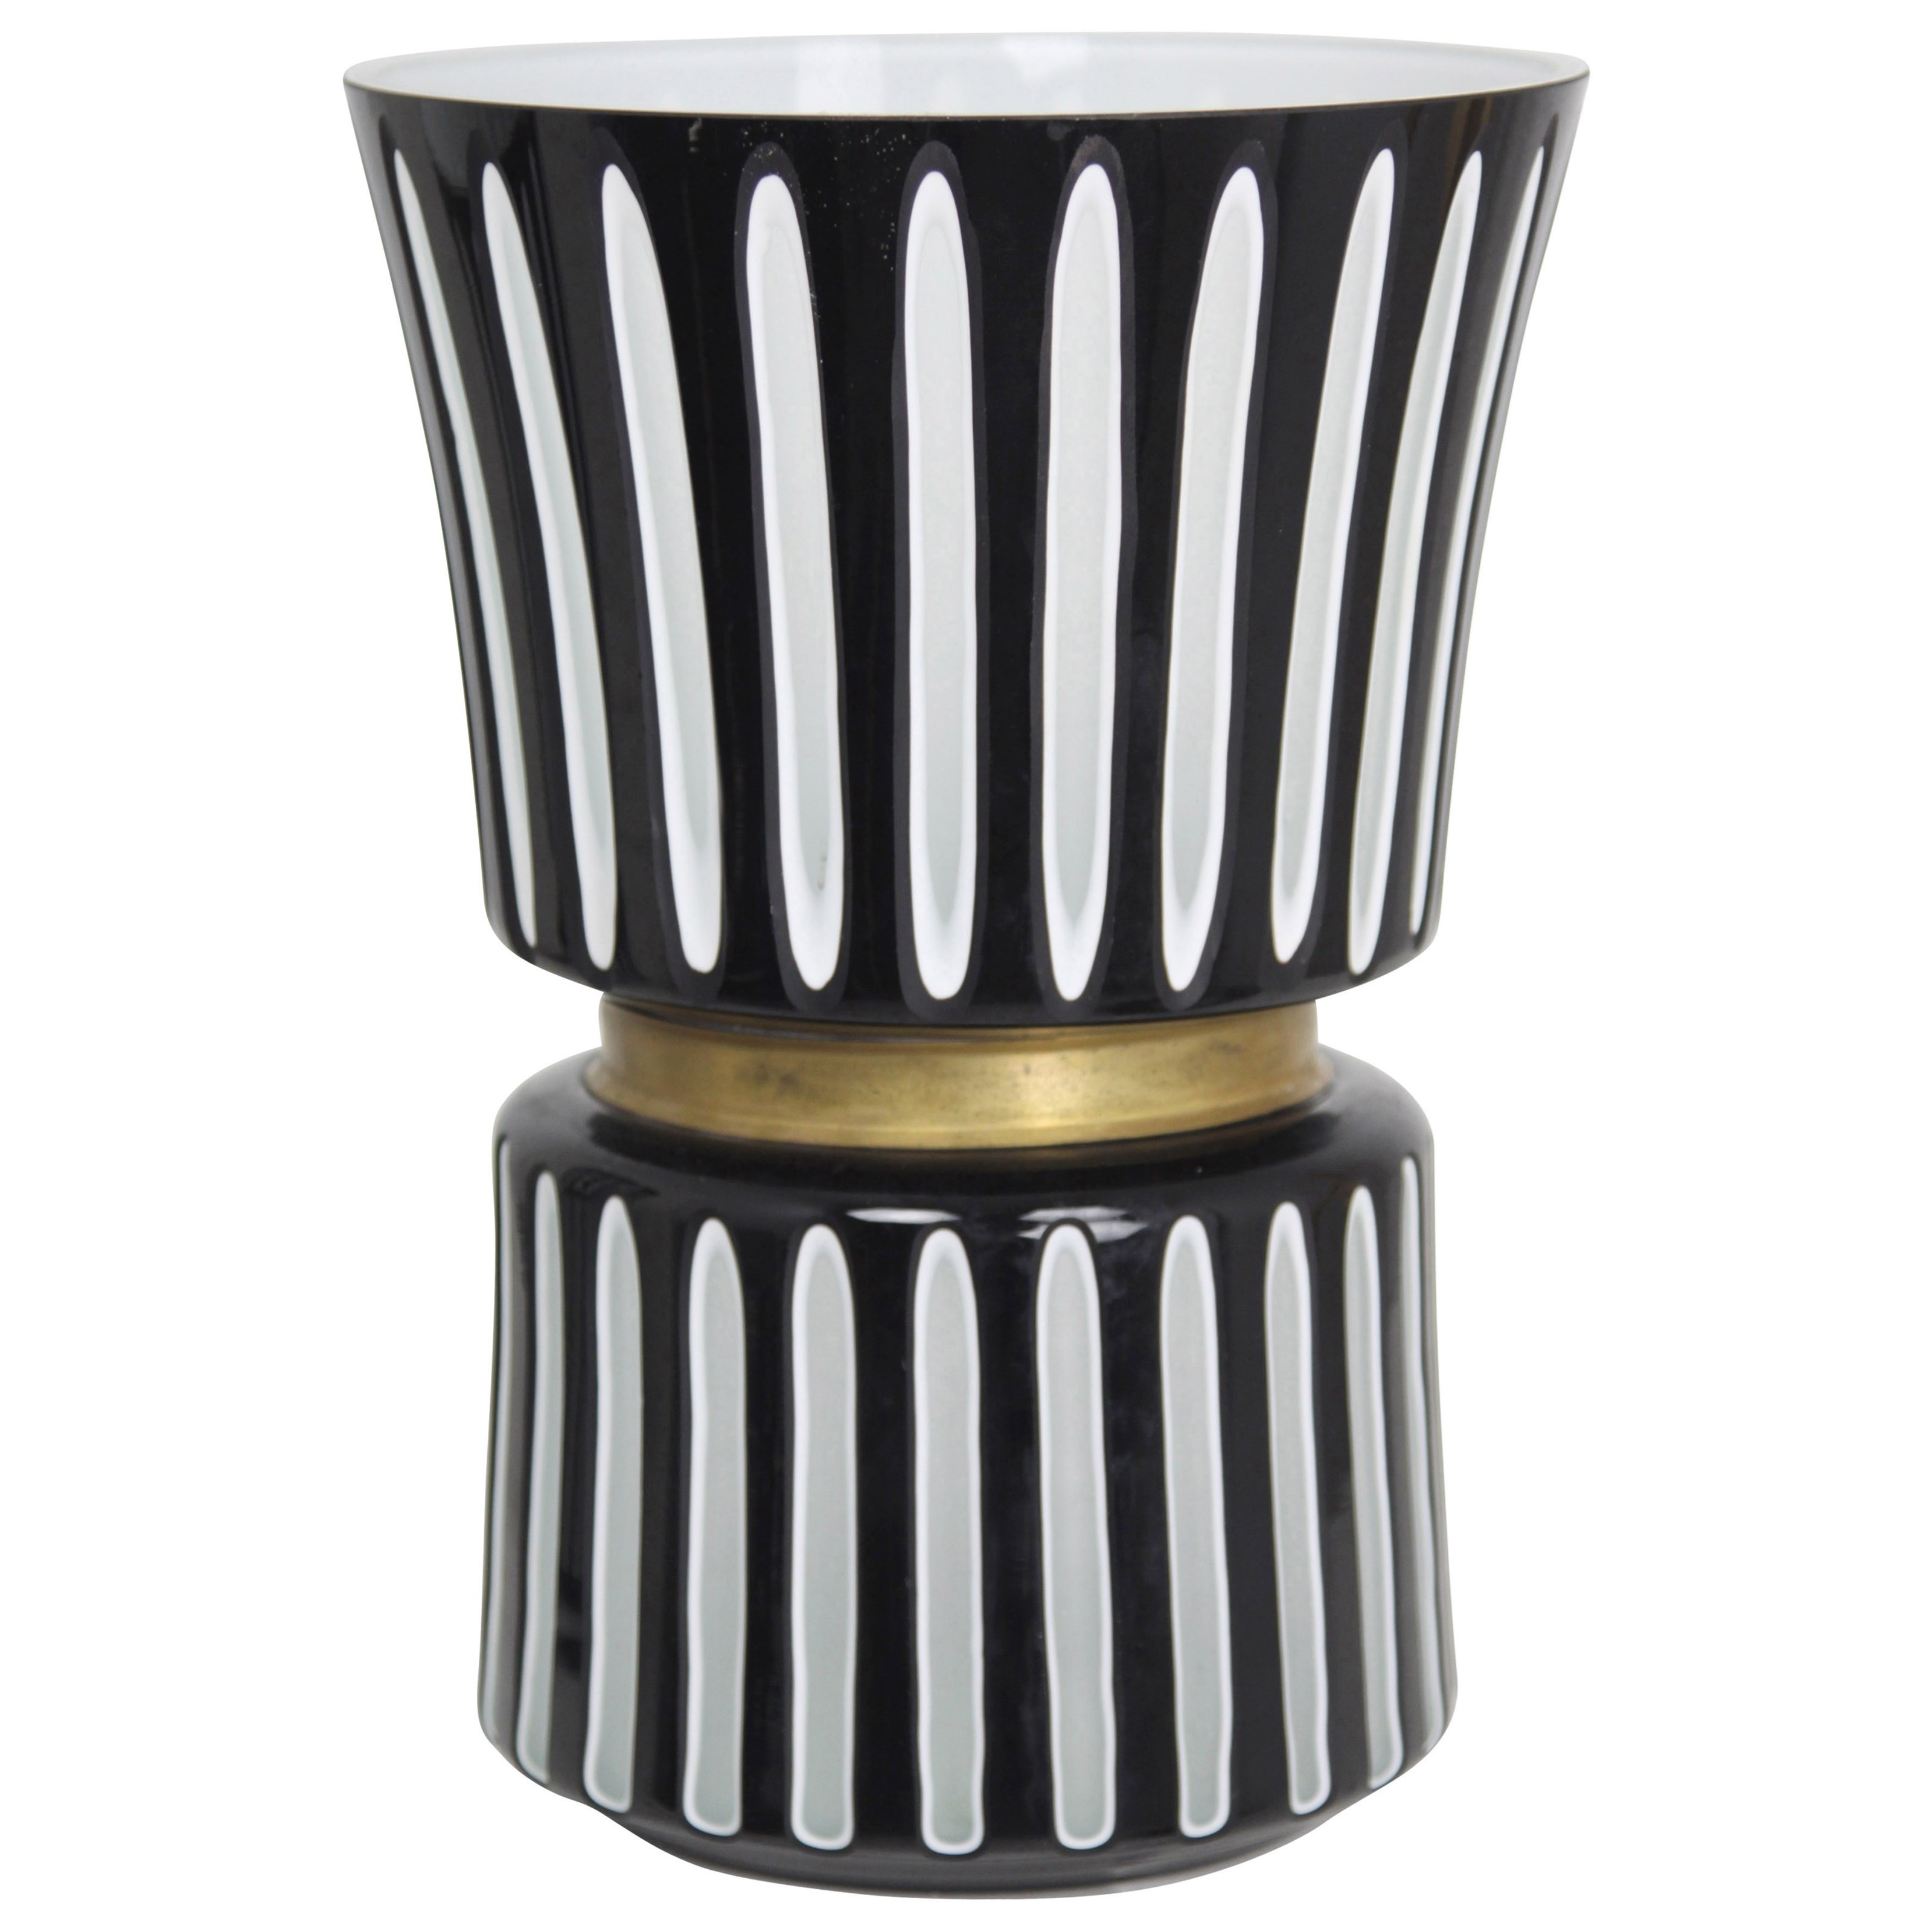 Accessories Black and White Ceramic Vase by StyleCraft at Alison Craig Home Furnishings